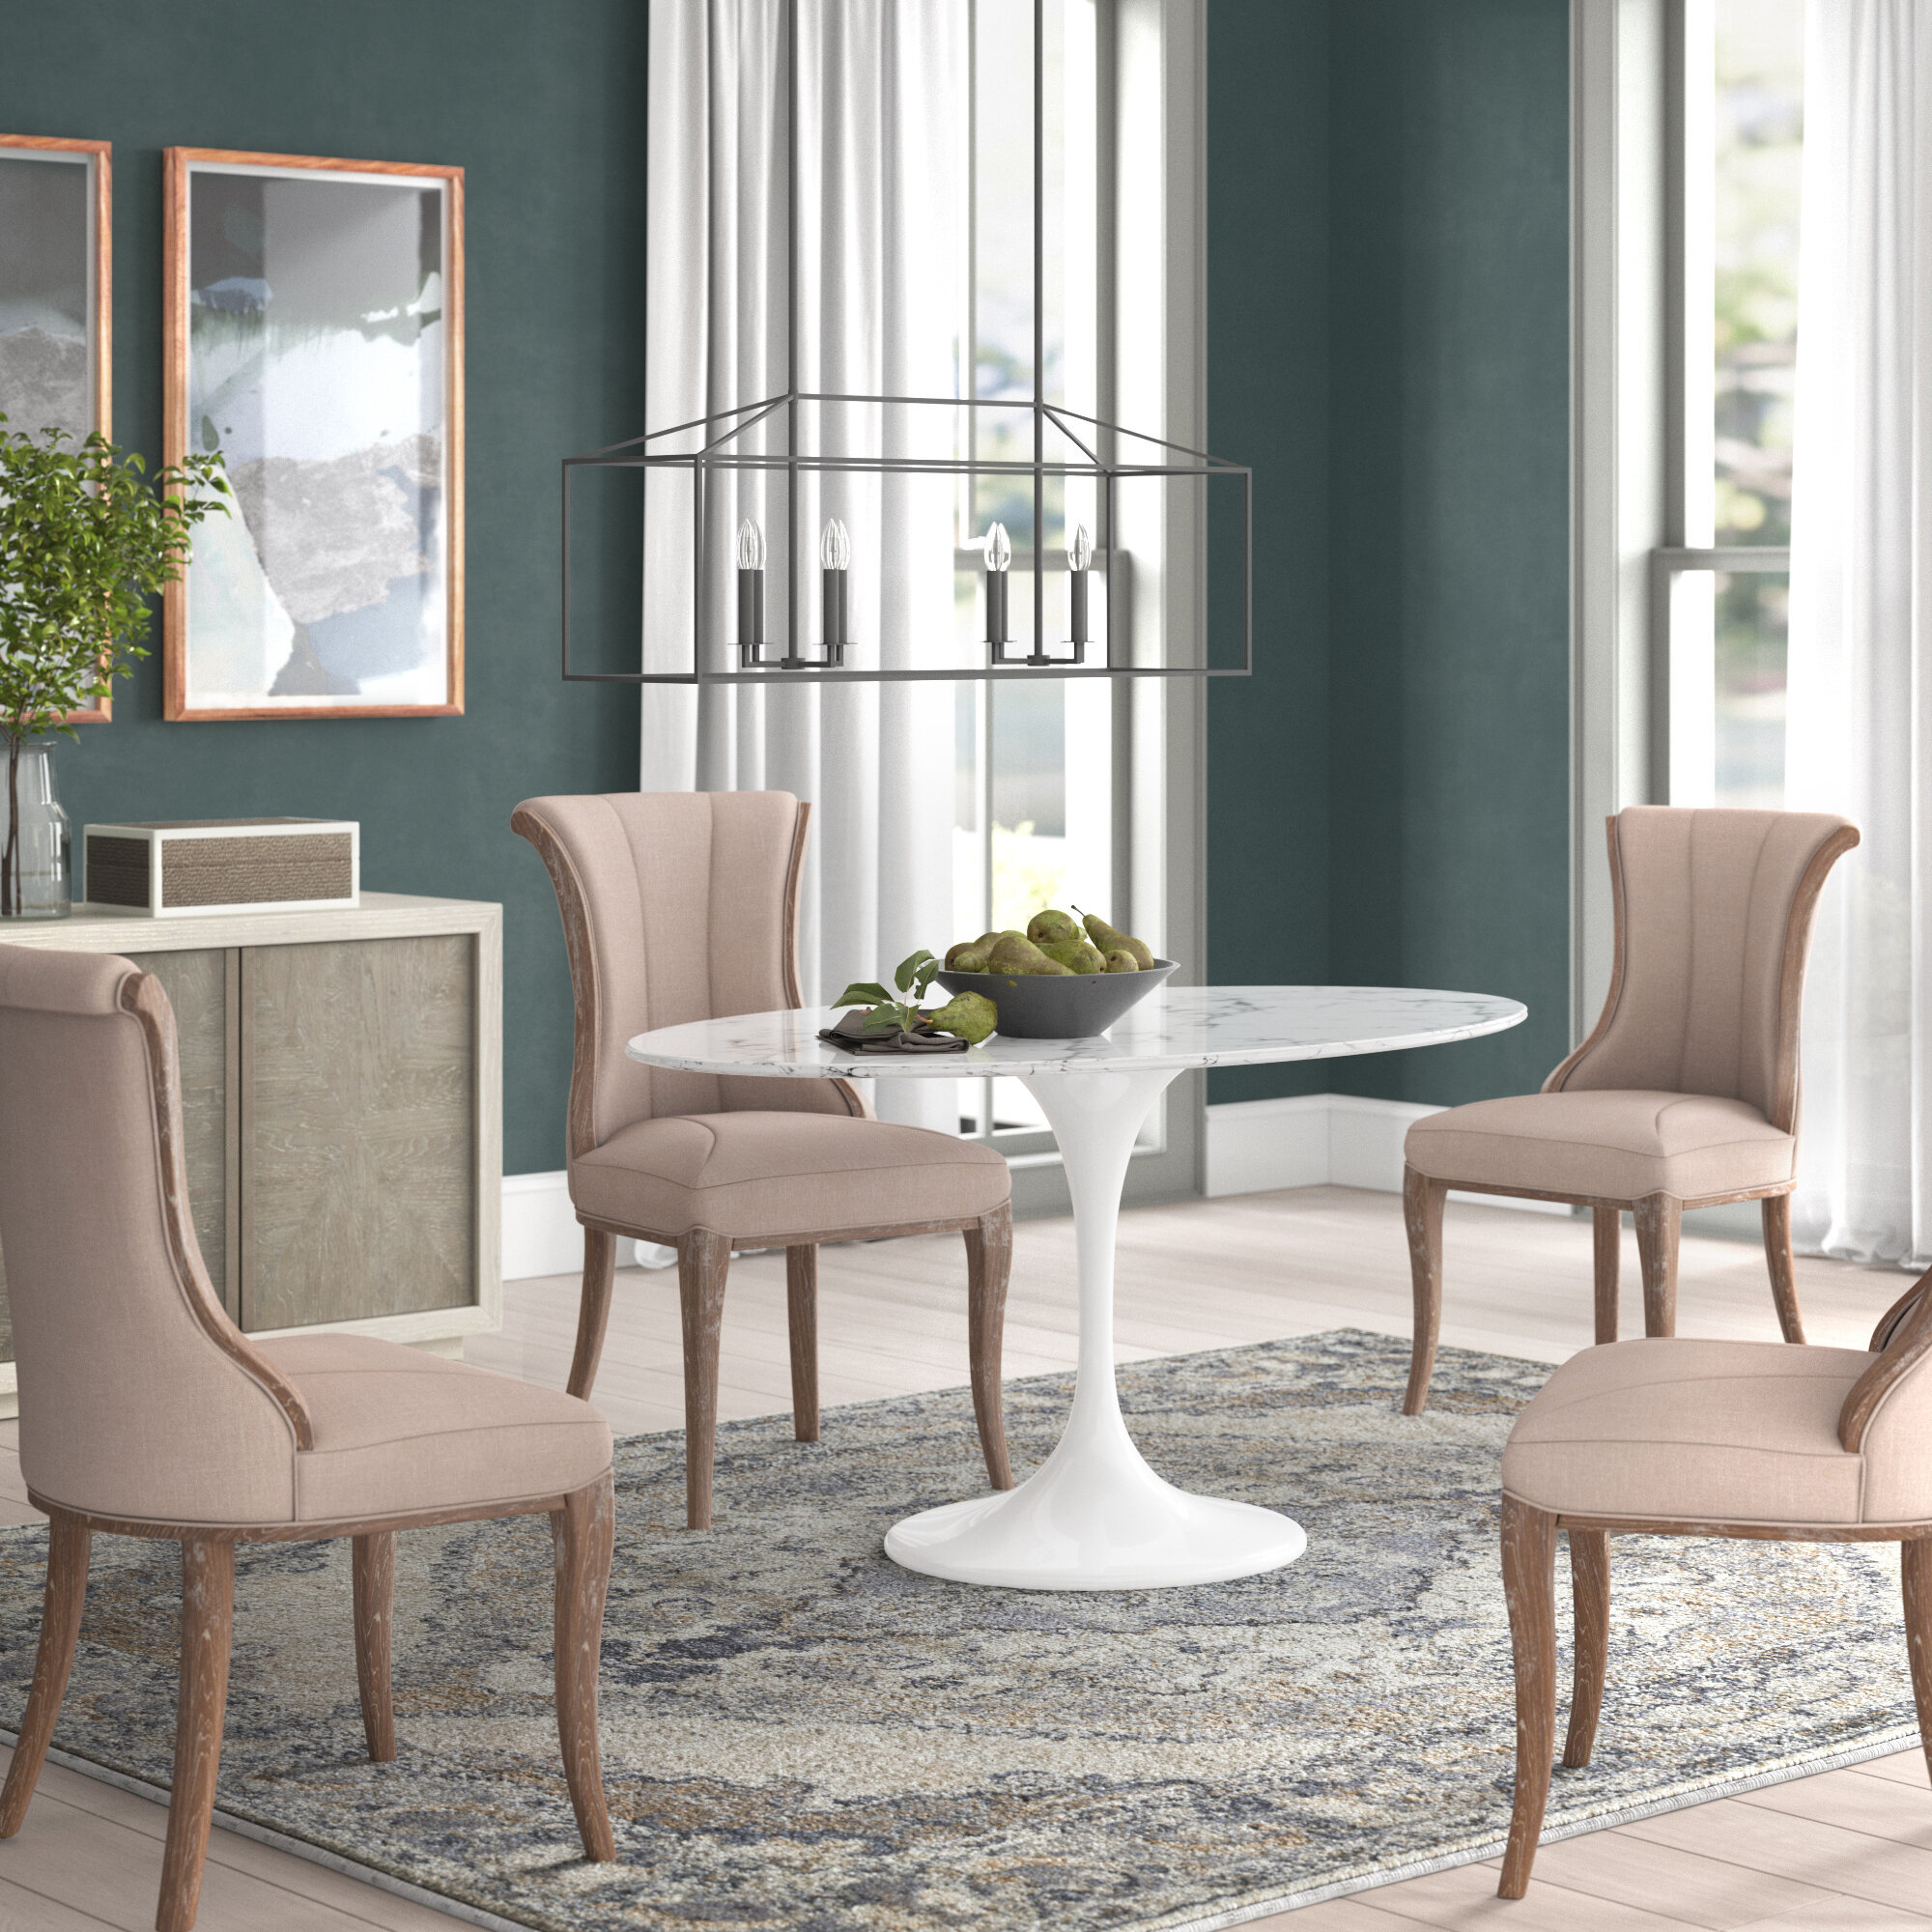 Glam Joss & Main Kitchen & Dining Tables You'll Love in 9   Wayfair